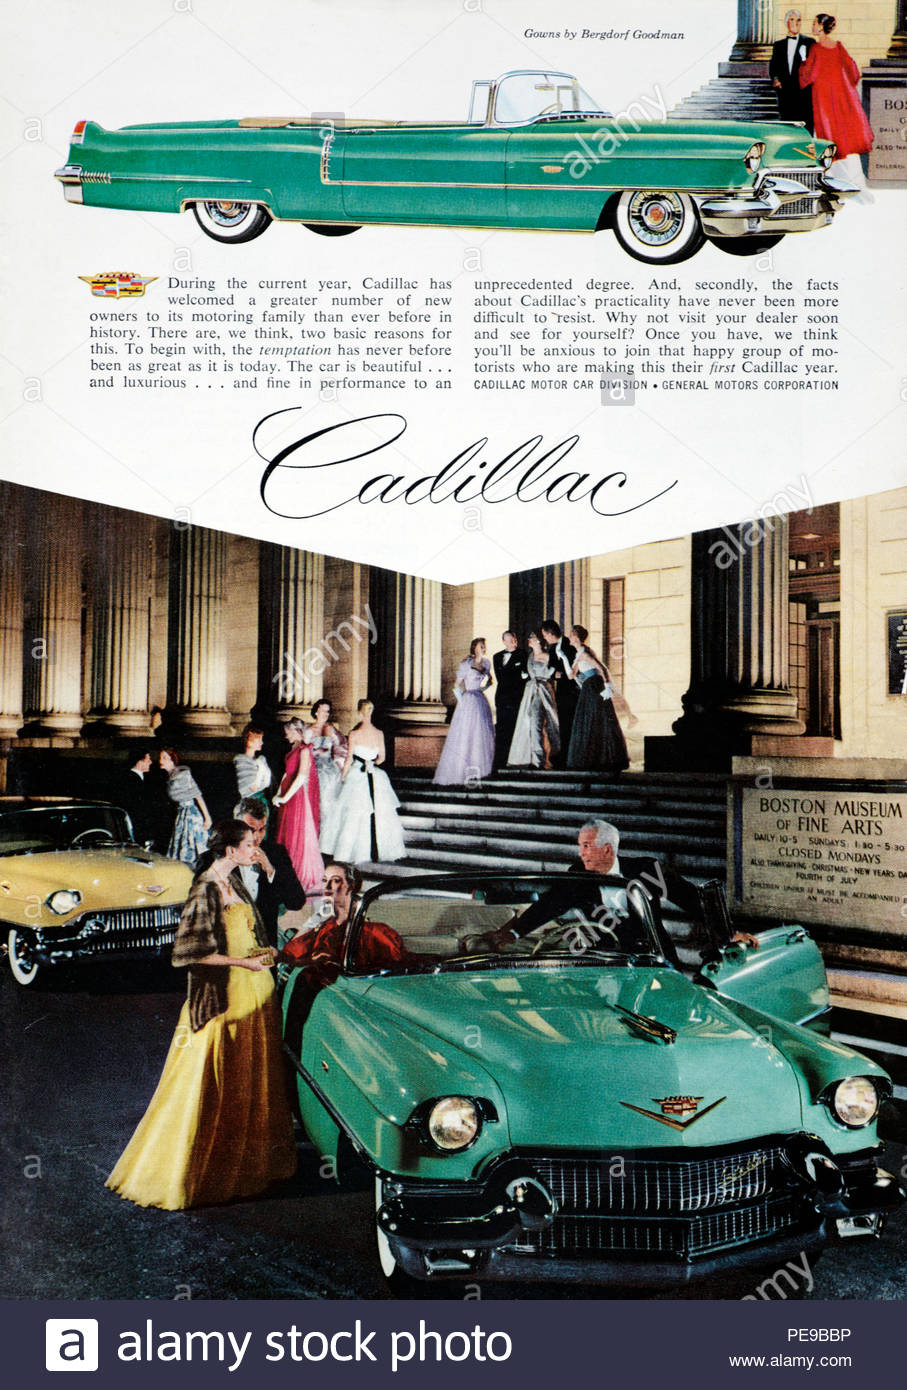 Vintage advertising for the Cadillac Car 1956 - Stock Image